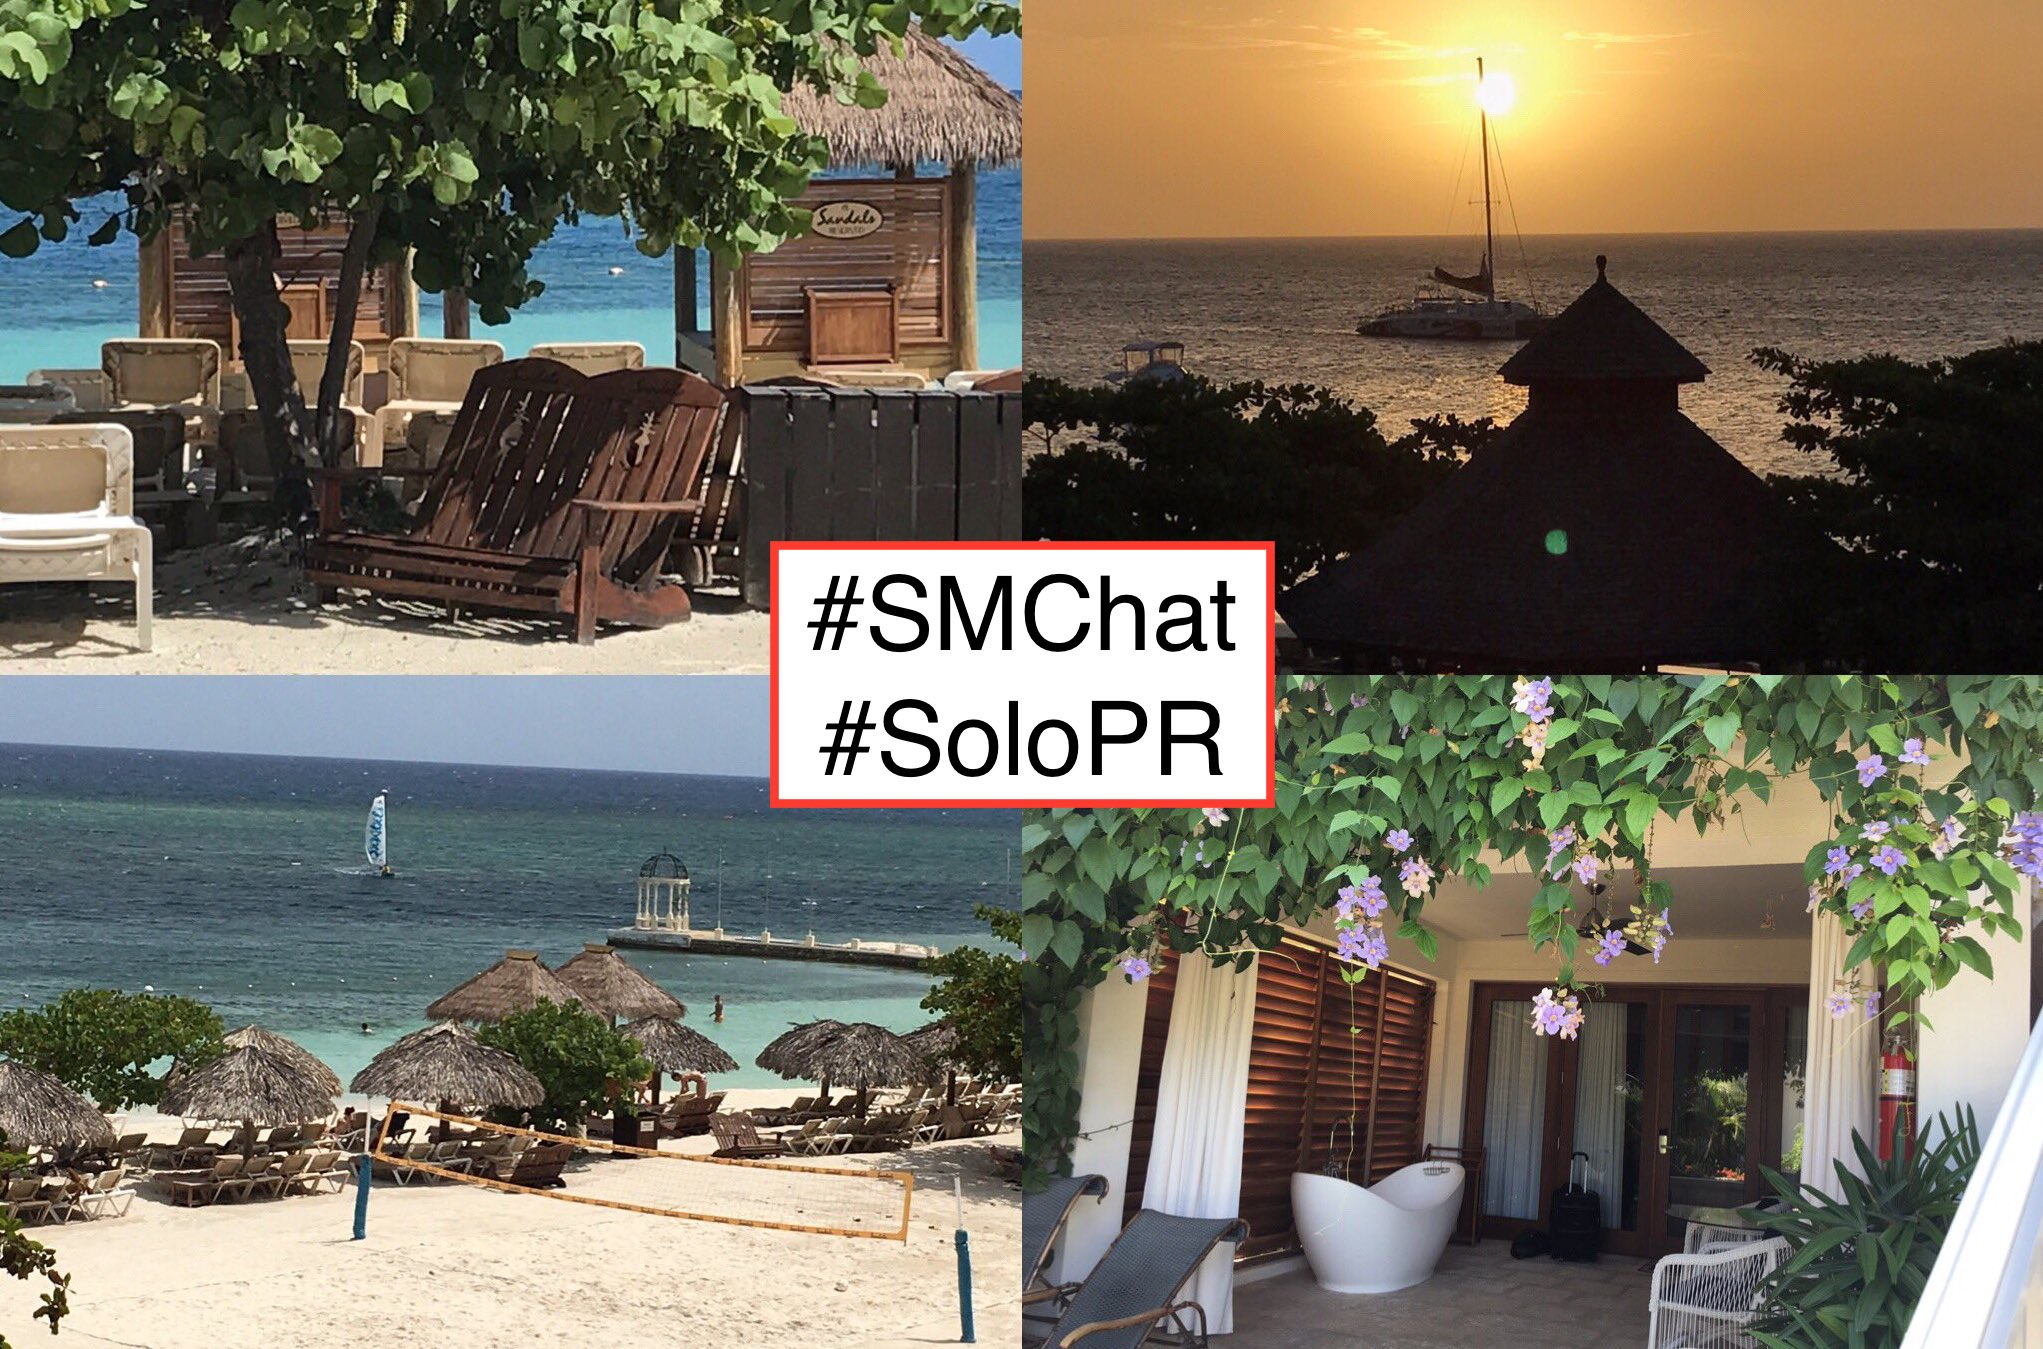 #smchat #solopr Q4 What are your #musthave #tools & resources to manage work while on #vacation? https://t.co/5EAupZDjAX